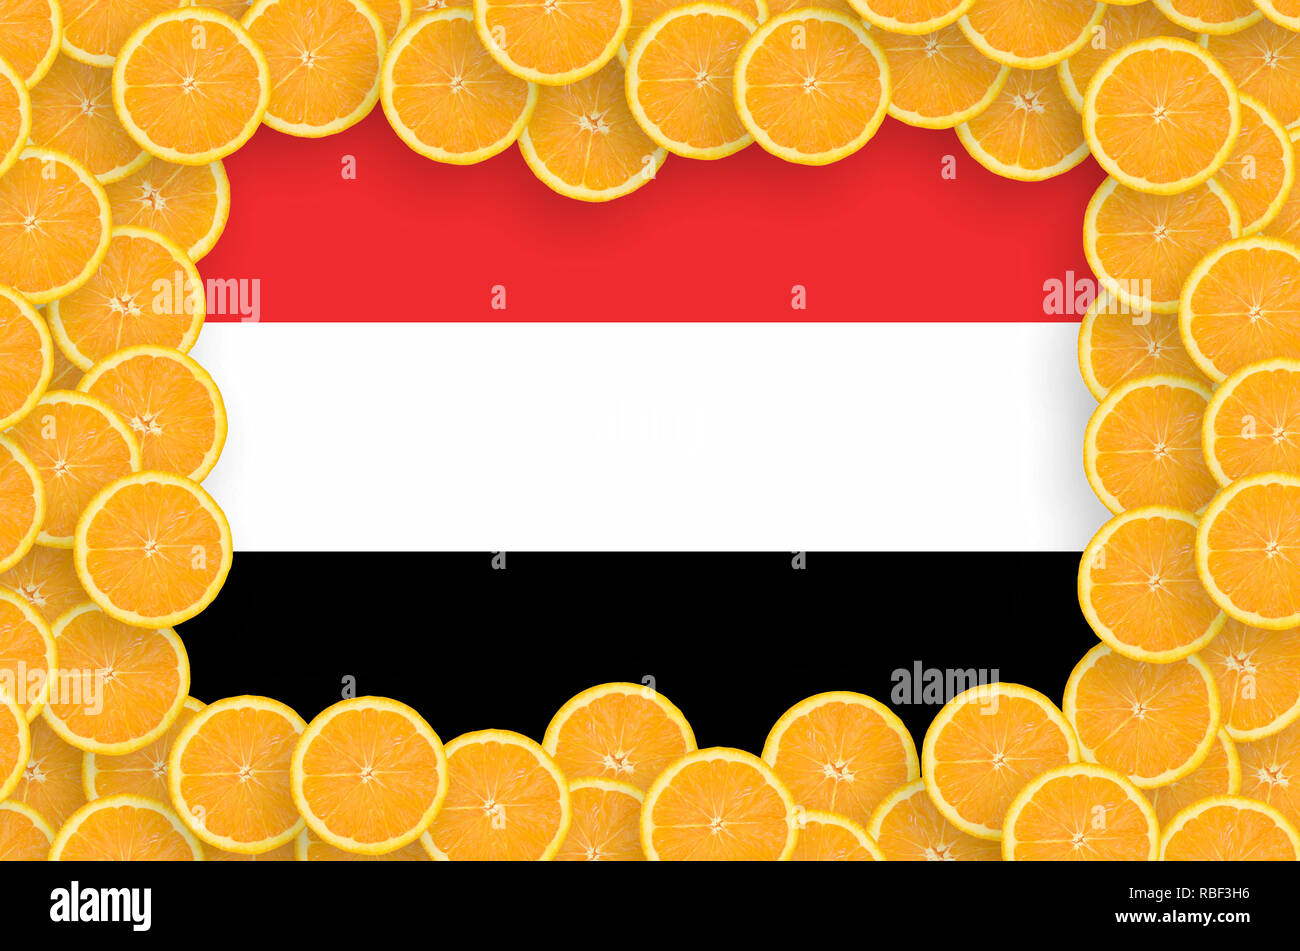 Yemen flag  in frame of orange citrus fruit slices. Concept of growing as well as import and export of citrus fruits - Stock Image